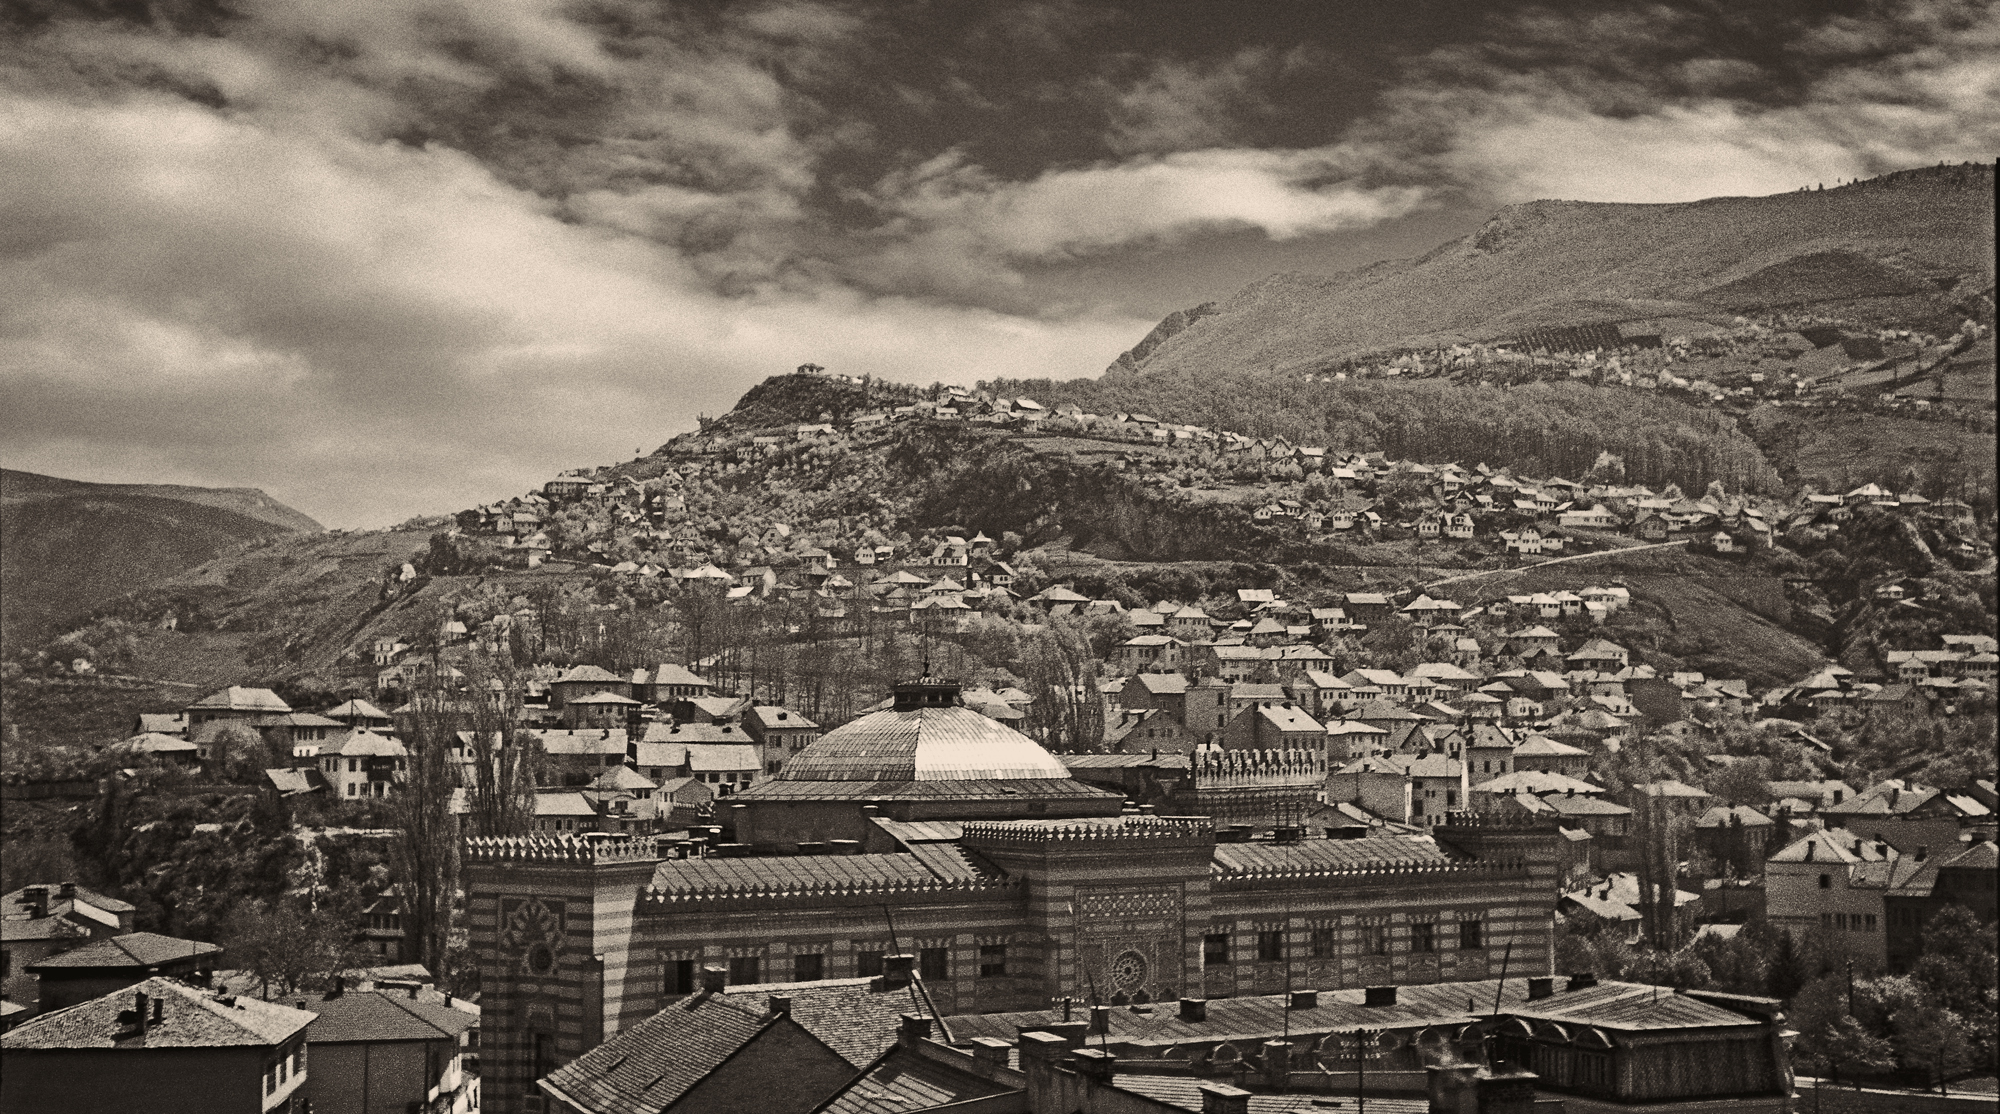 Panorama featuring the Vijećnica and Hrvatin, © Mehmed A. Akšamija